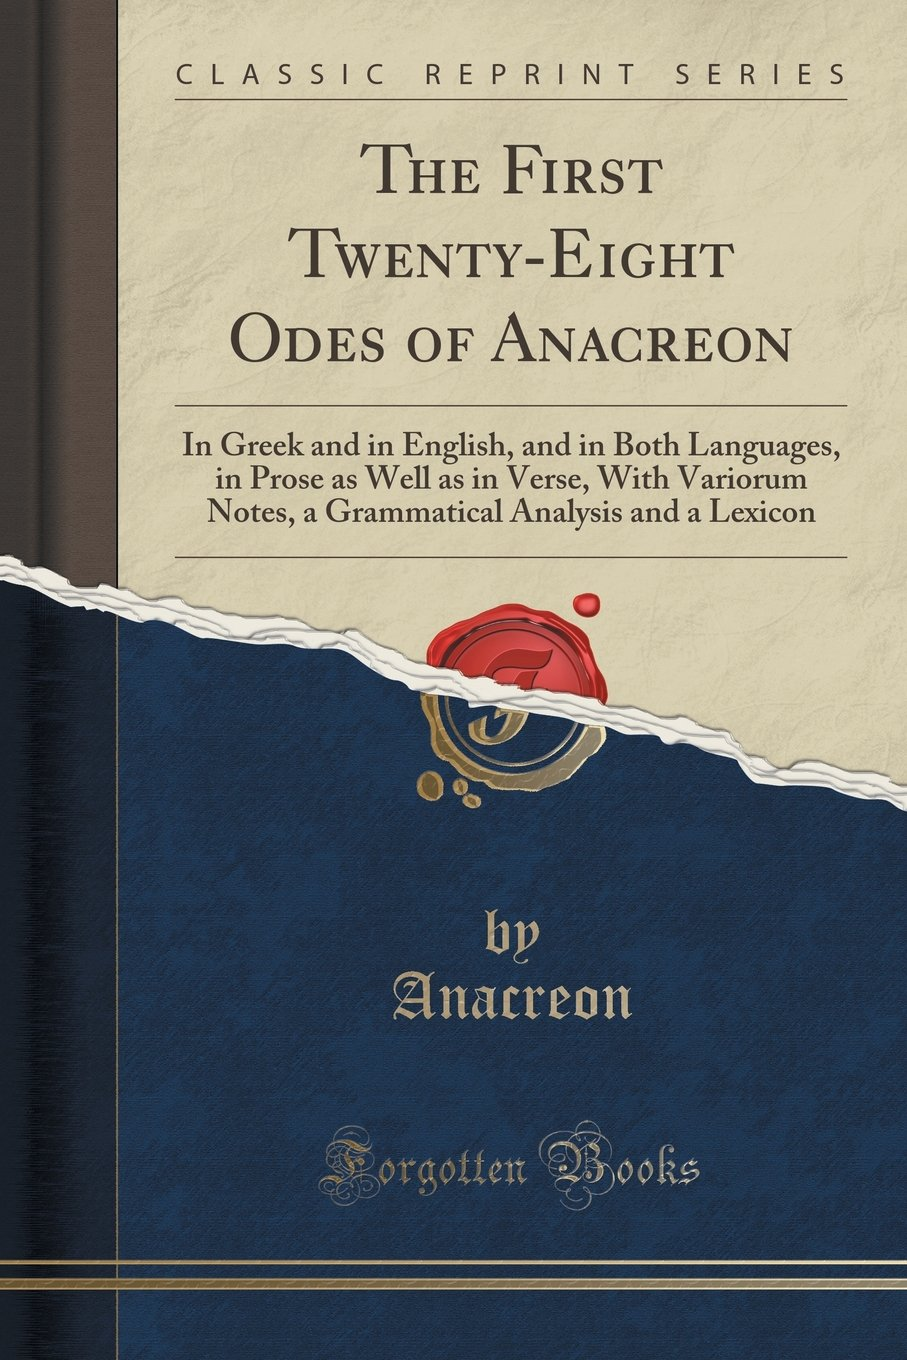 Read Online The First Twenty-Eight Odes of Anacreon: In Greek and in English, and in Both Languages, in Prose as Well as in Verse, With Variorum Notes, a Grammatical Analysis and a Lexicon (Classic Reprint) pdf